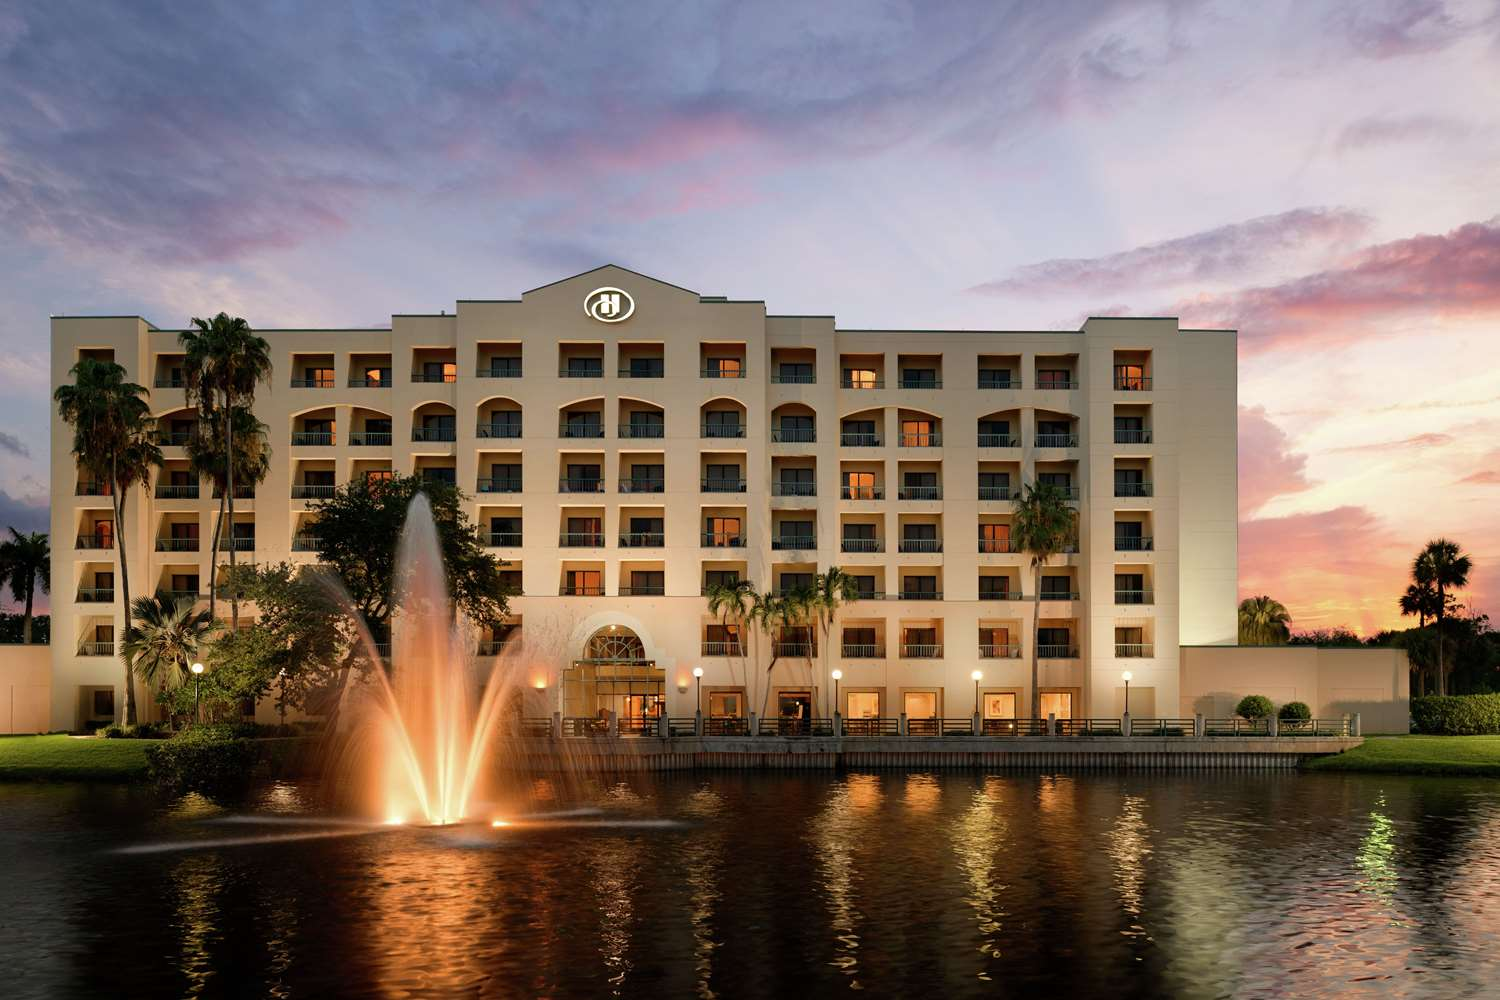 Pure Rooms Promote Well-Being at the Hilton Boca Raton Suites